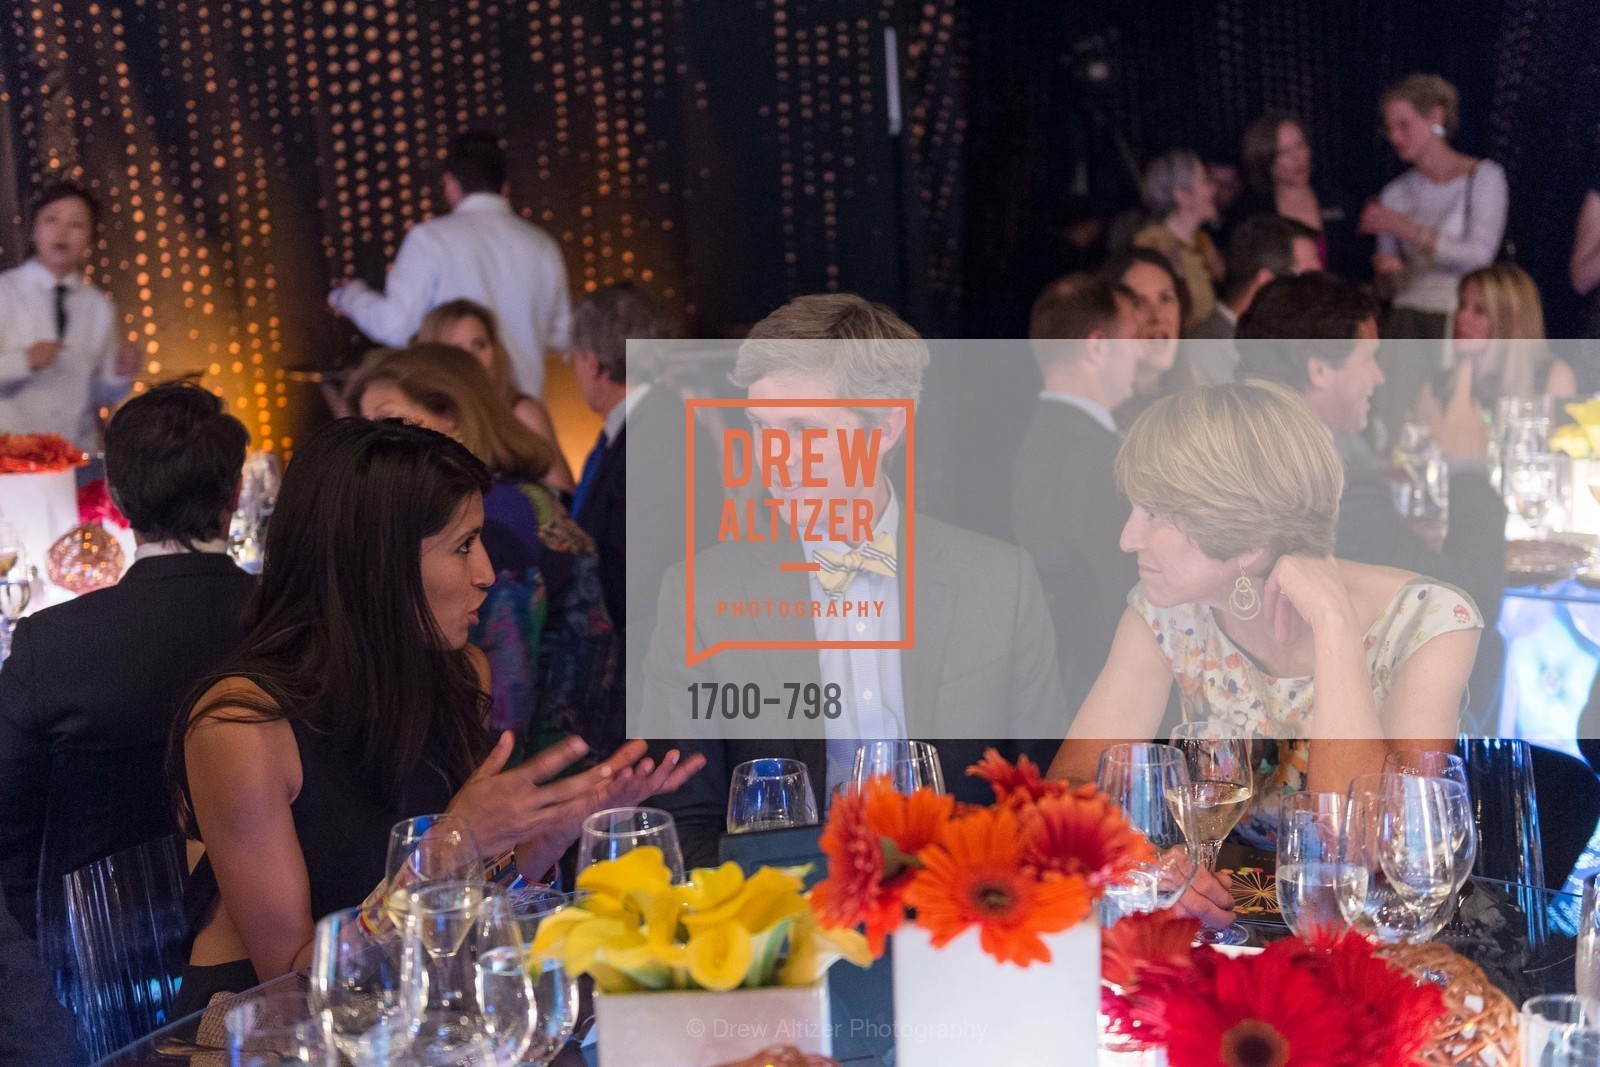 Leila Janah, Kate Duhamel, CALIFORNIA ACADEMY OF SCIENCES - Big Bang Gala 2015, US, April 23rd, 2015,Drew Altizer, Drew Altizer Photography, full-service agency, private events, San Francisco photographer, photographer california